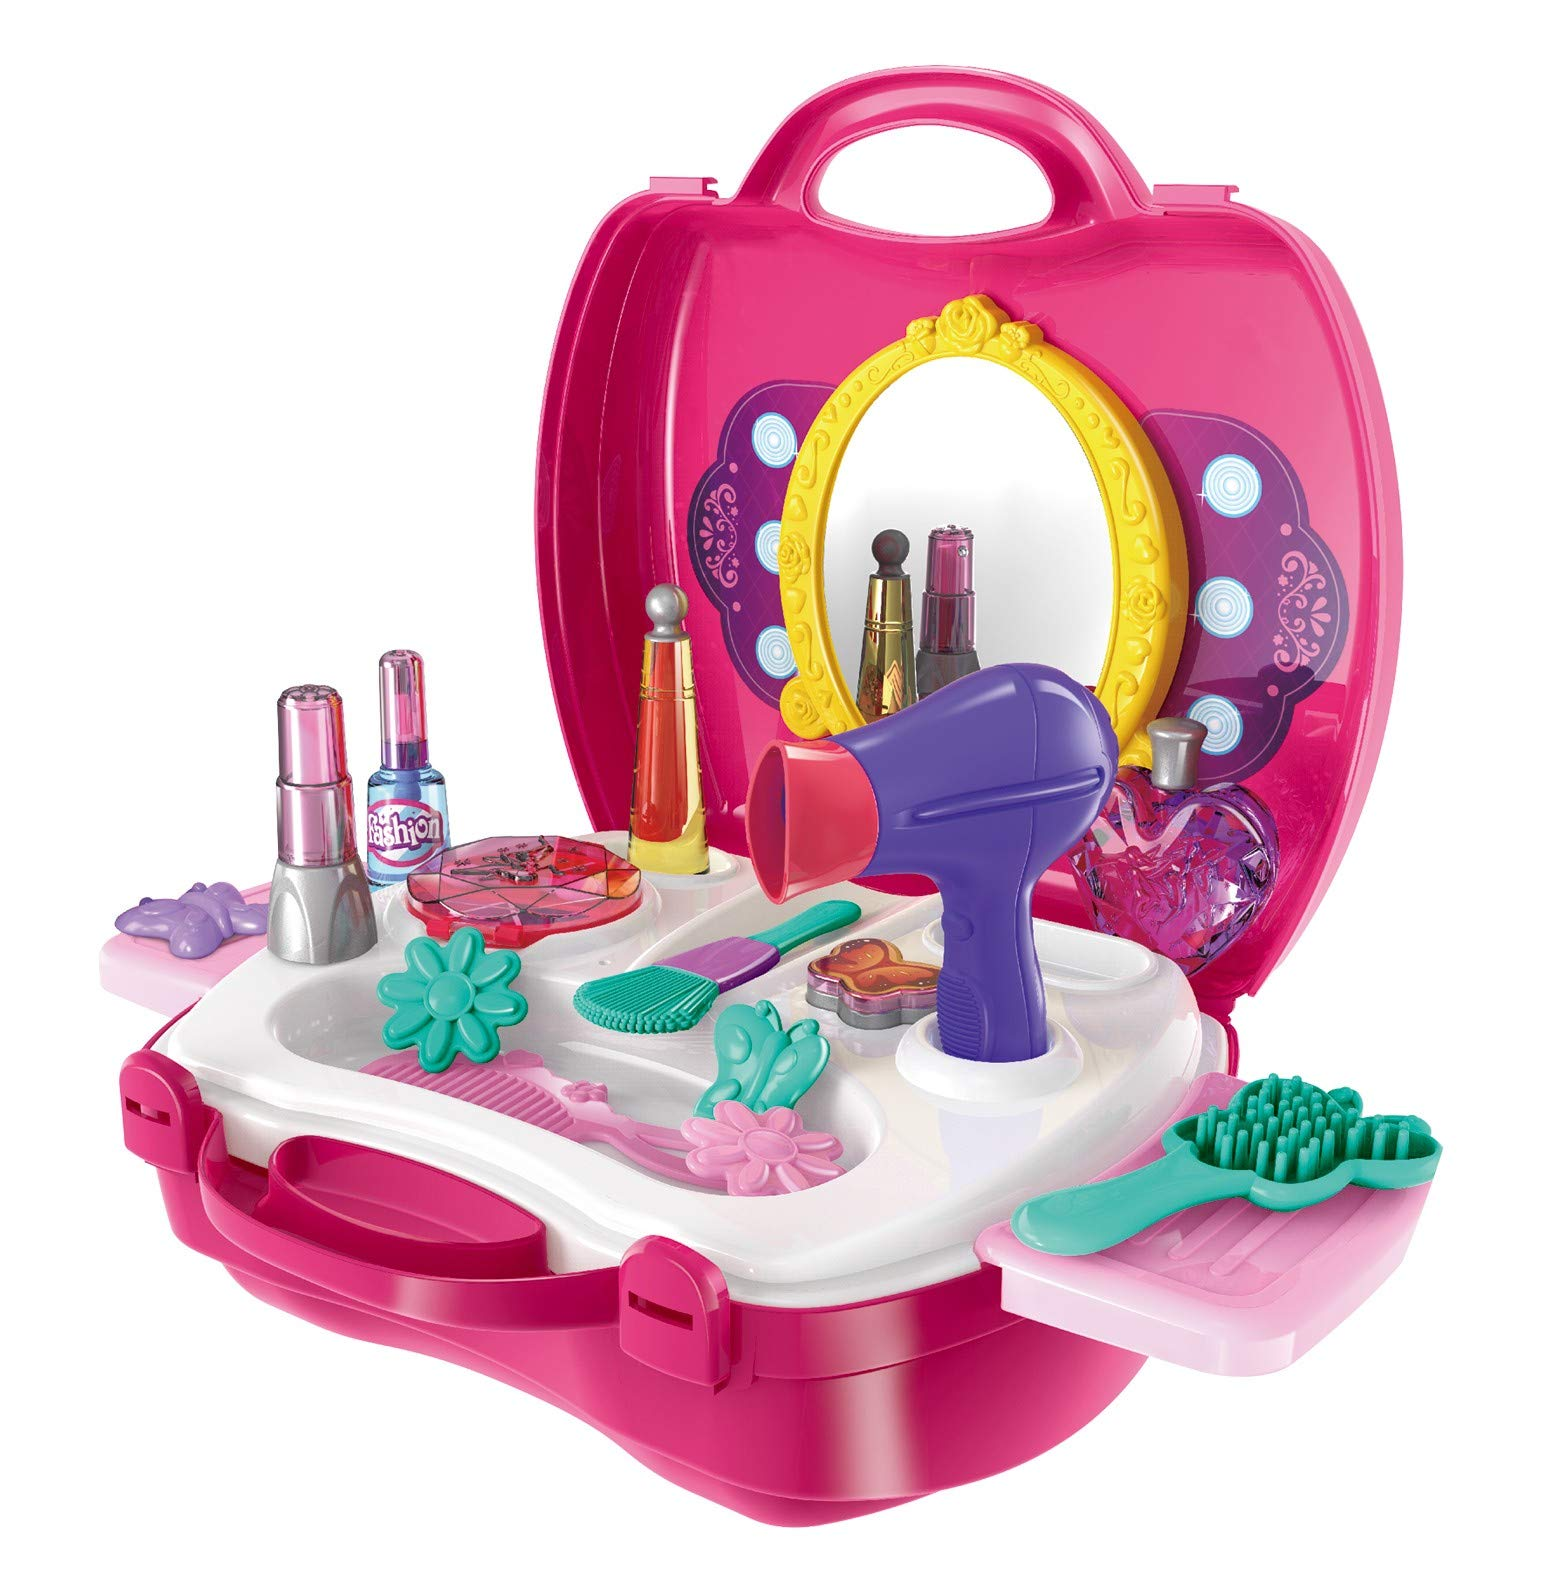 Make Up Case Little Girls Cosmetic Set - Pretend Play Accessories For Toddler Kids, Beauty Salon, 21 Pieces Makeup And Cosmetic Vanity Case, Durable Dress-Up Beauty Kit Hair Salon Playset For Girls,